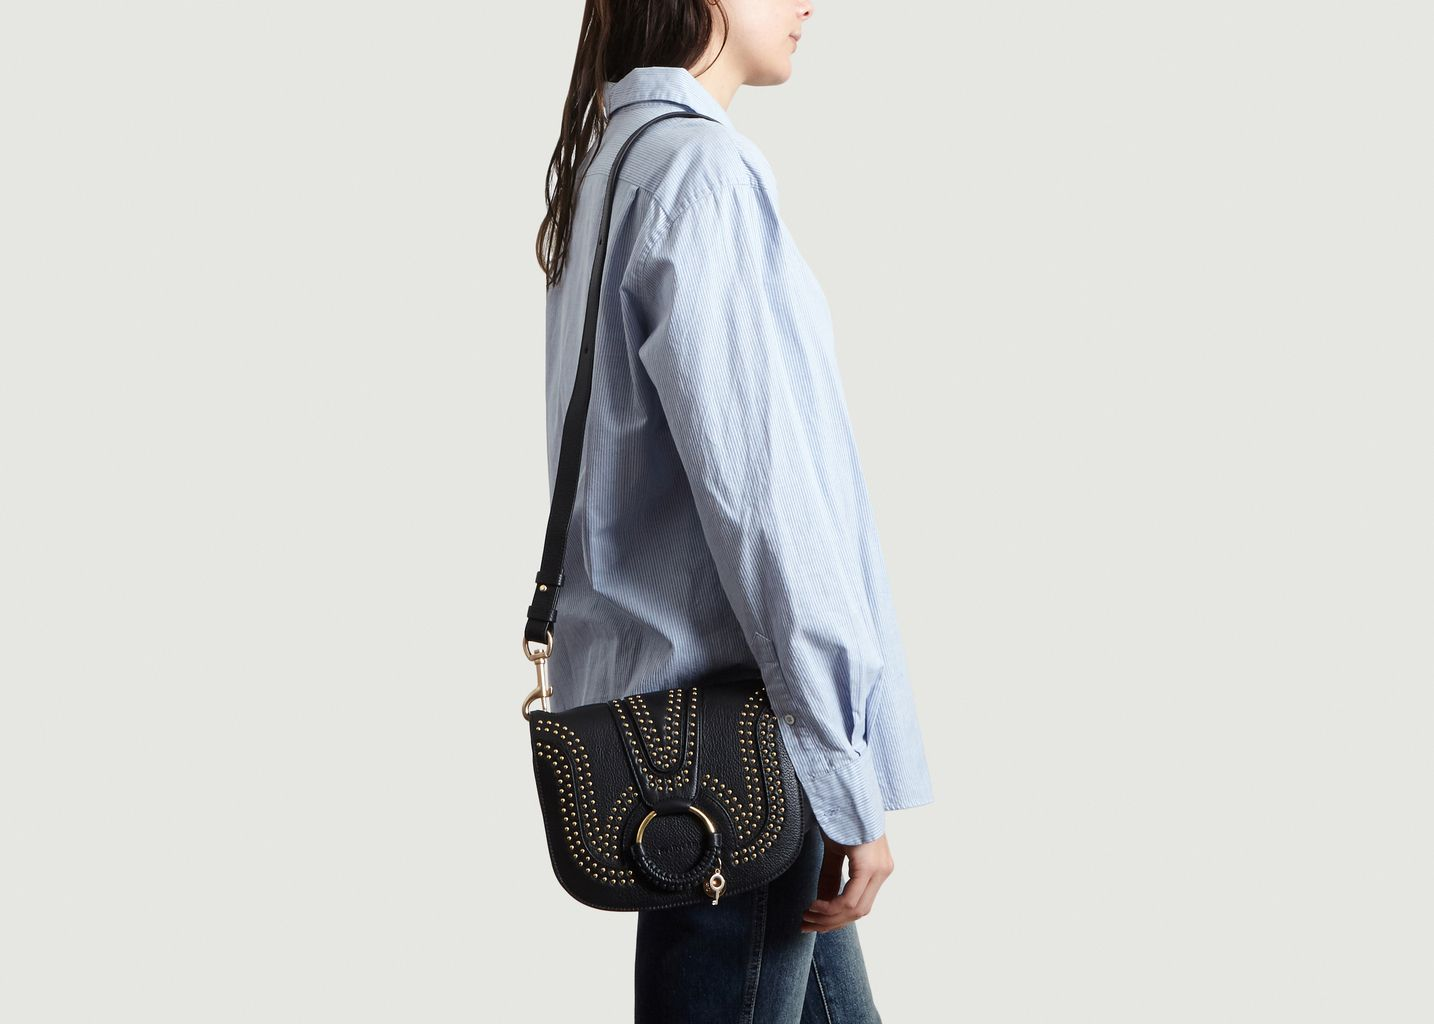 Sac Hana Small à Clous - See by Chloé